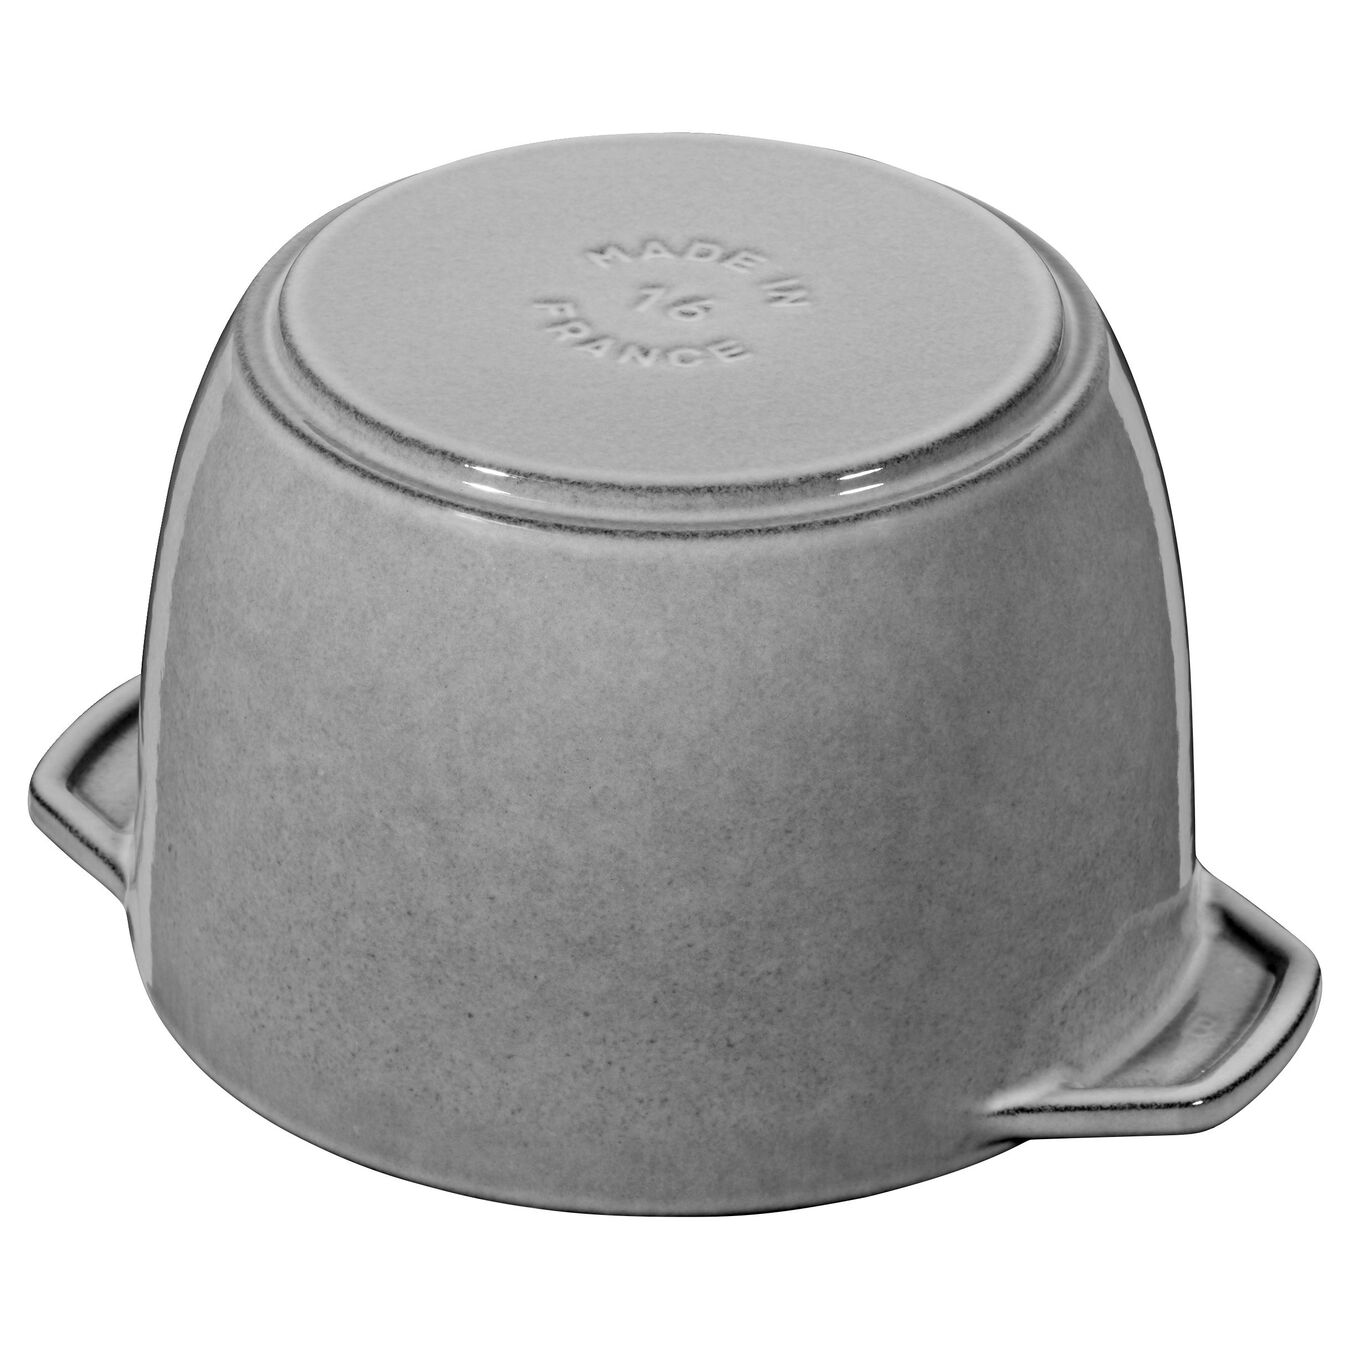 1.5 l Cast iron round Rice Cocotte, Graphite-Grey,,large 6